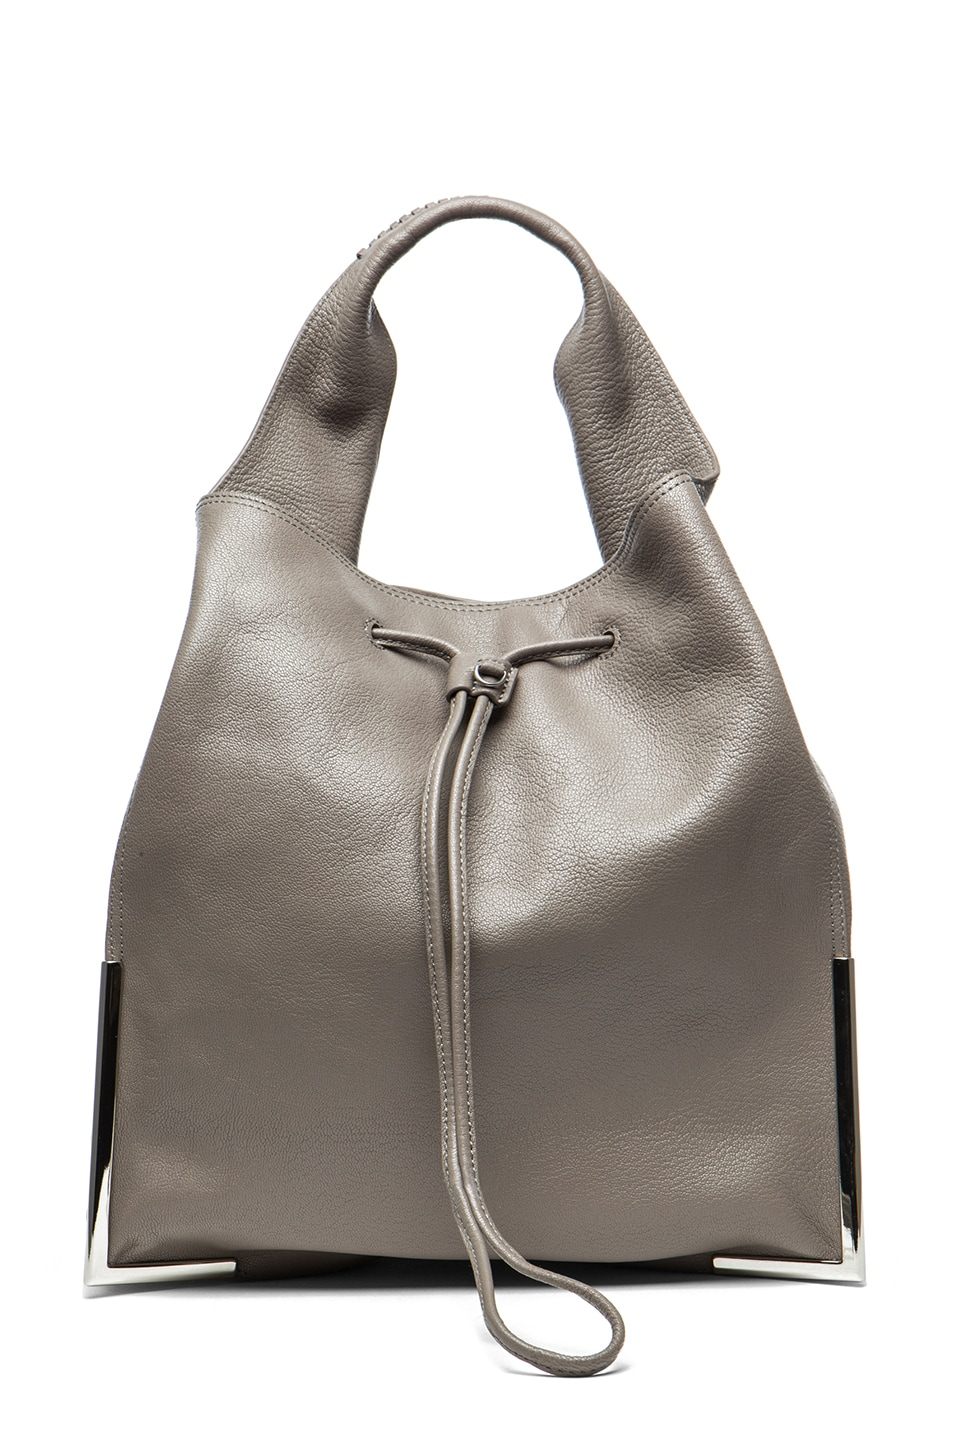 Image 1 of 3.1 phillip lim Scout Drawstring Hobo in Pebble